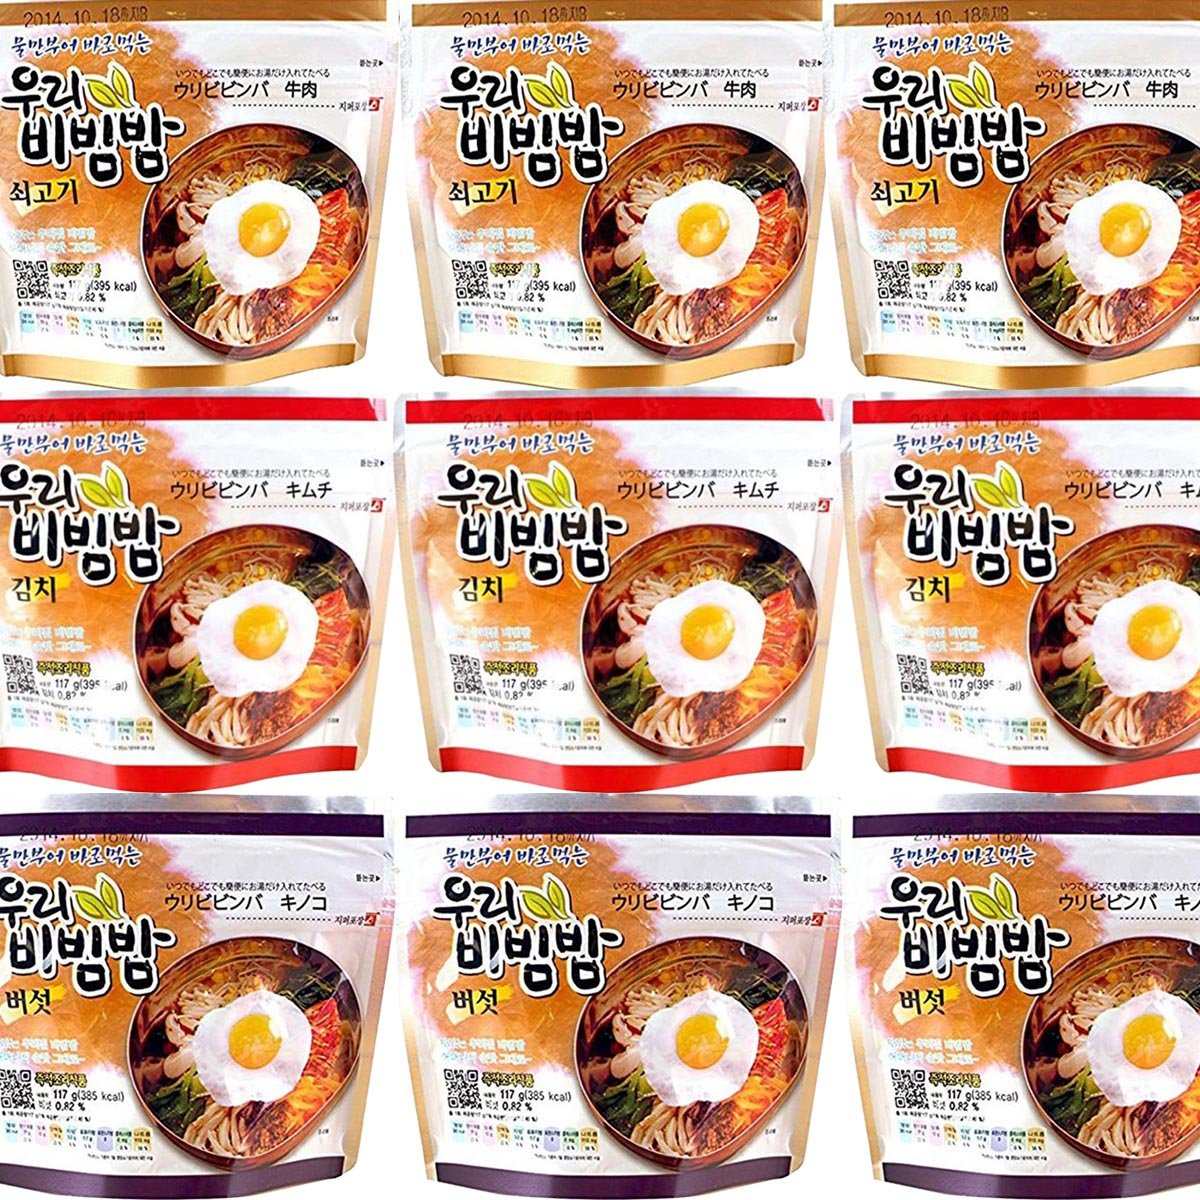 MRE Meals Woori's Ready to Eat BEEF / KIMCHI / MUSHROOM Bibimbap Korean Mixed Rice Bowl 100g (3.53oz) 335 Kcal Instant Rice Emergency Rice Food (BEEF / KIMCHI / MUSHROOM, TOTAL 9 PACK (EACH 3 PACK))